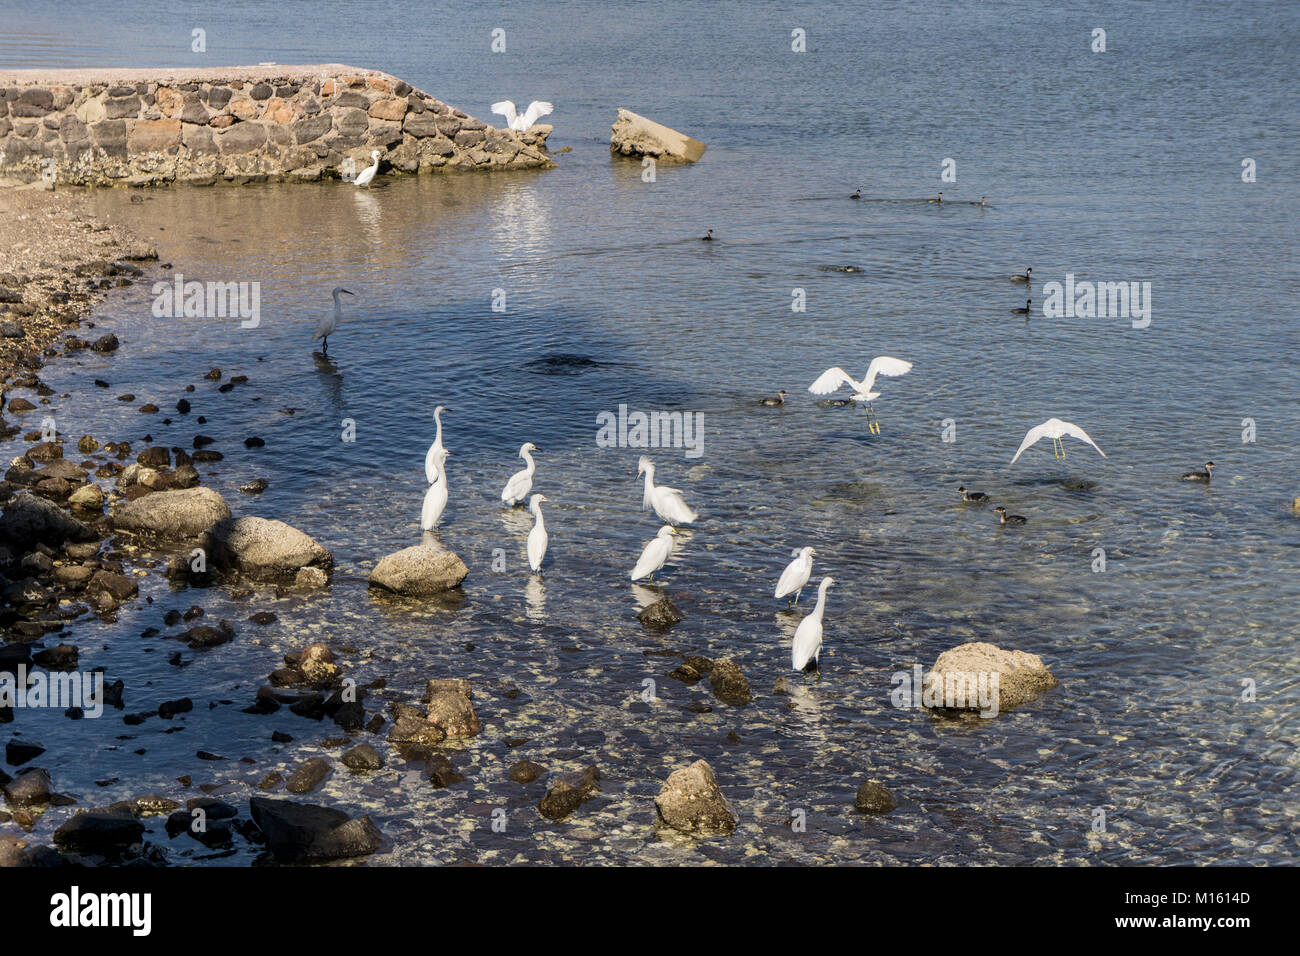 grouping of beautiful elegant small white snowy egret egrets stand patiently waiting & watching for prey in - Stock Image